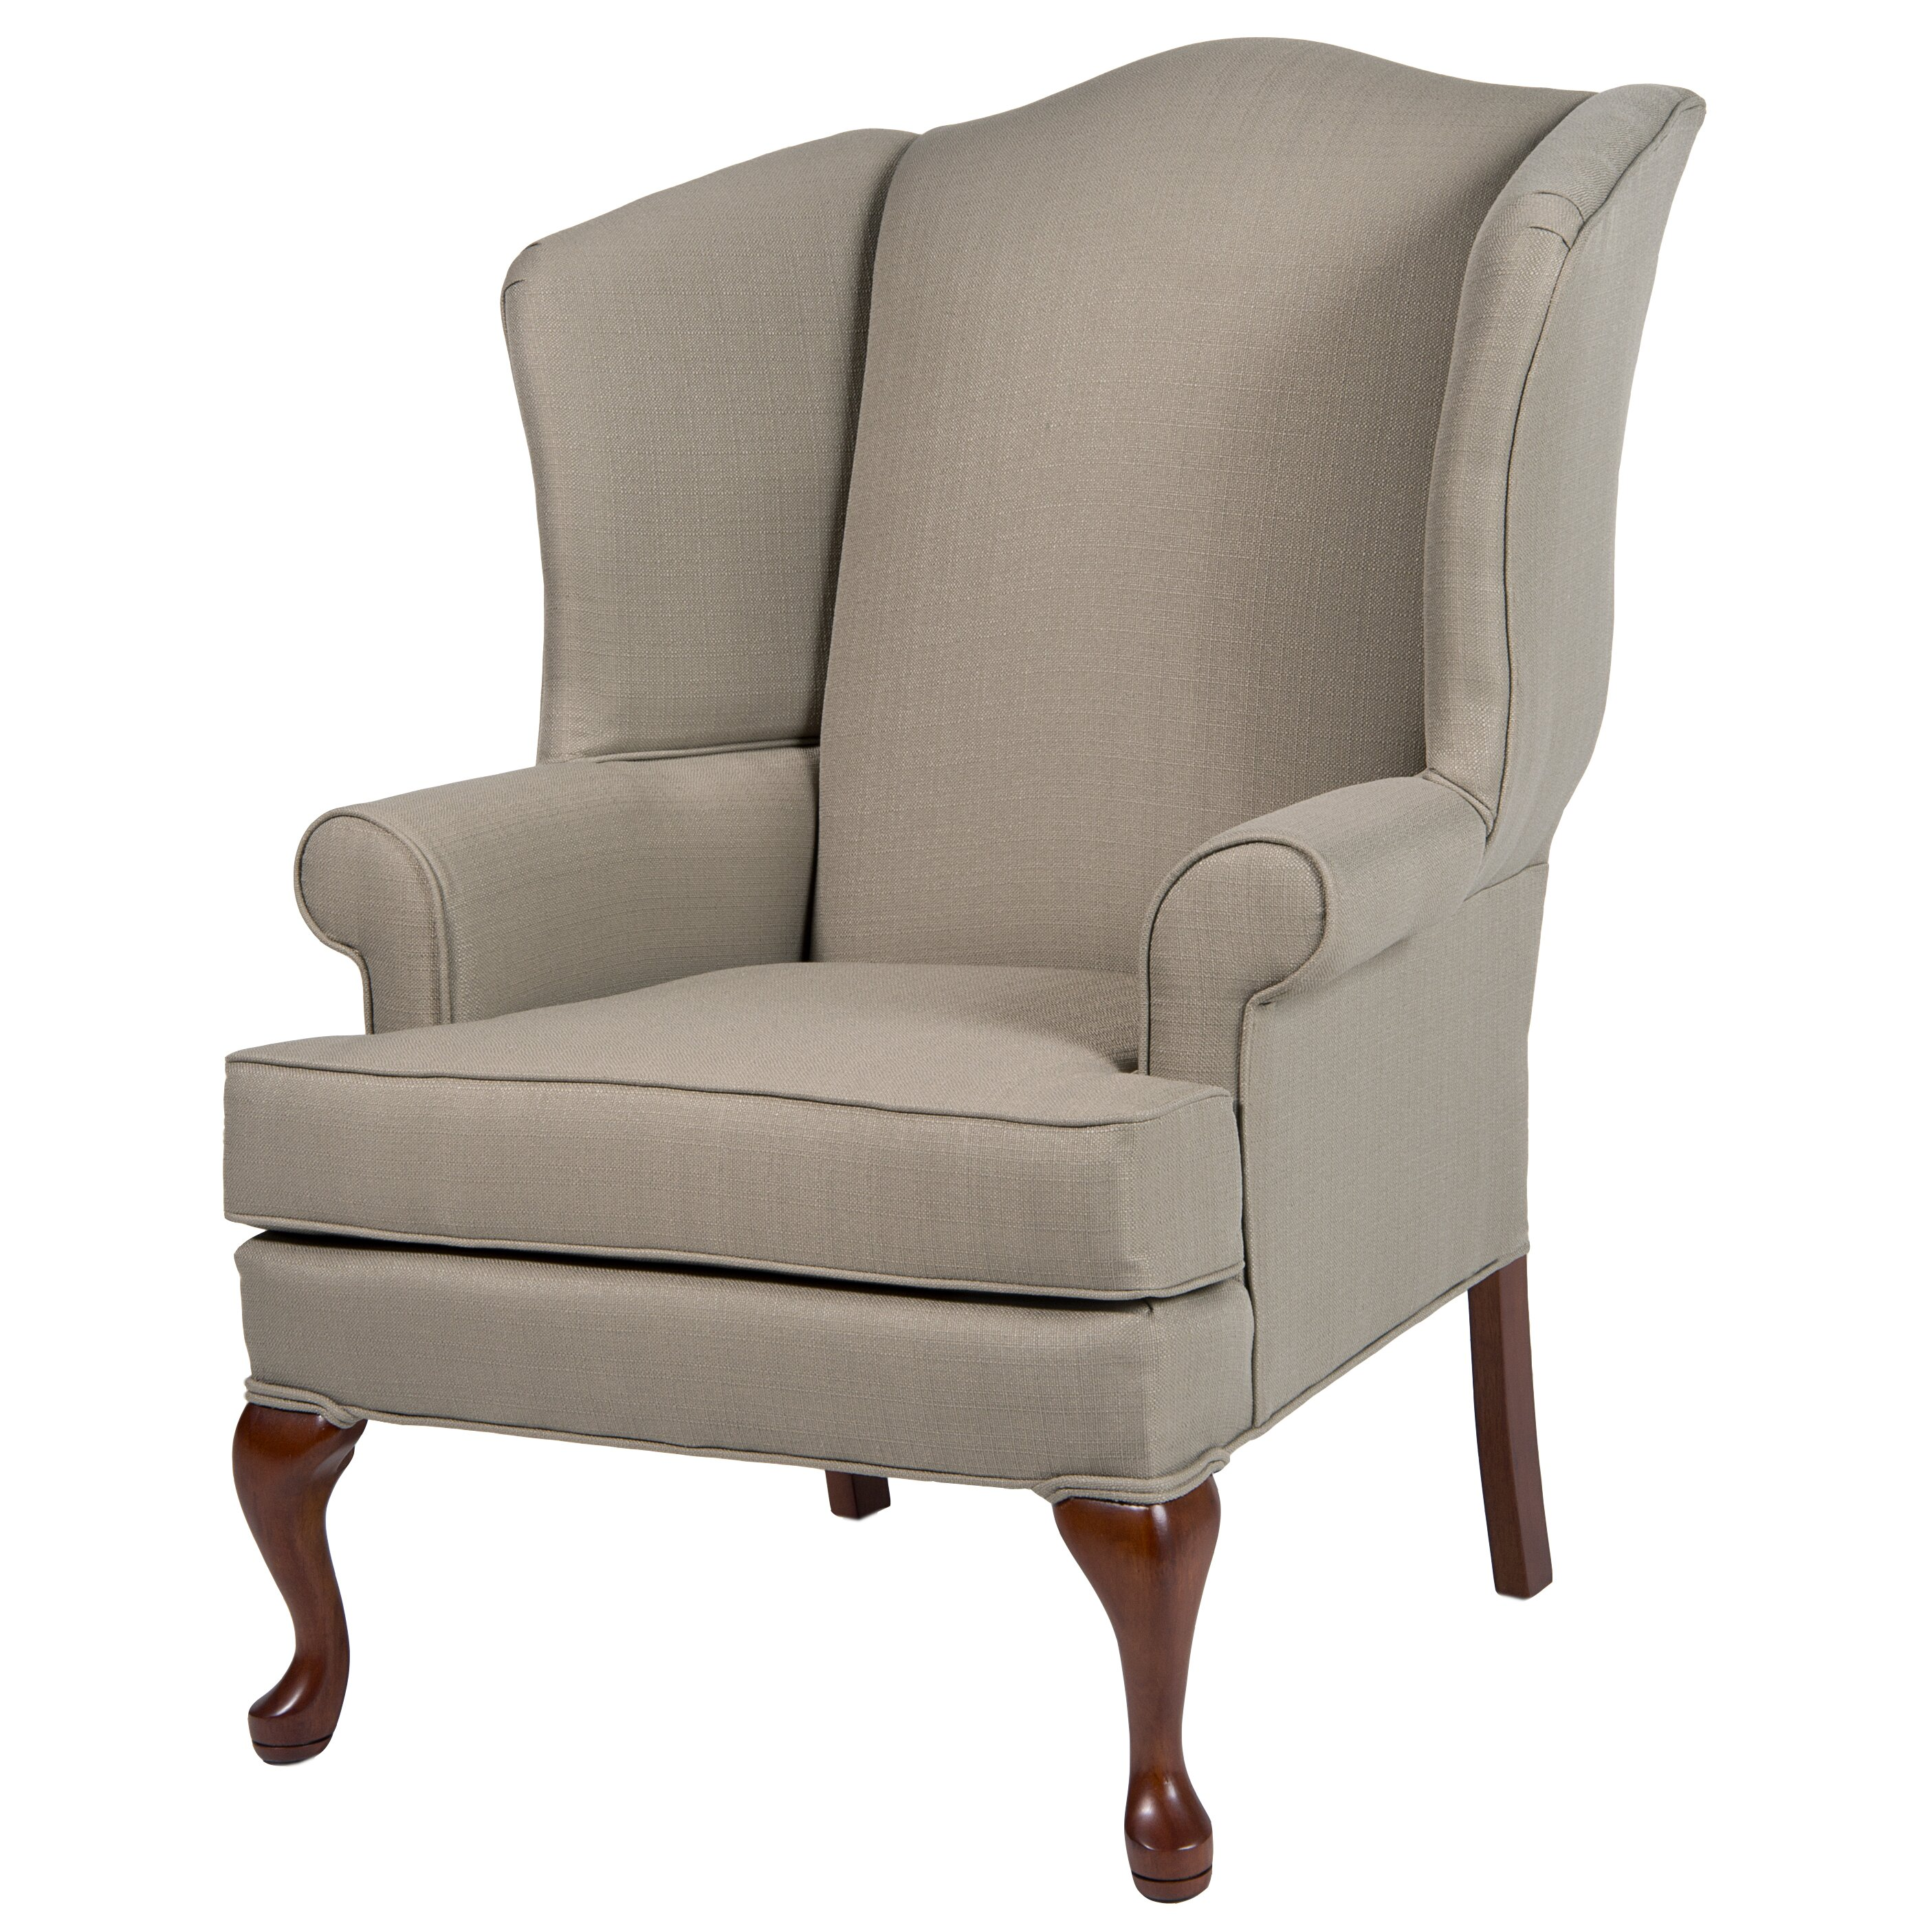 Comfort pointe erin wing back chair reviews wayfair for Wing back recliner chair